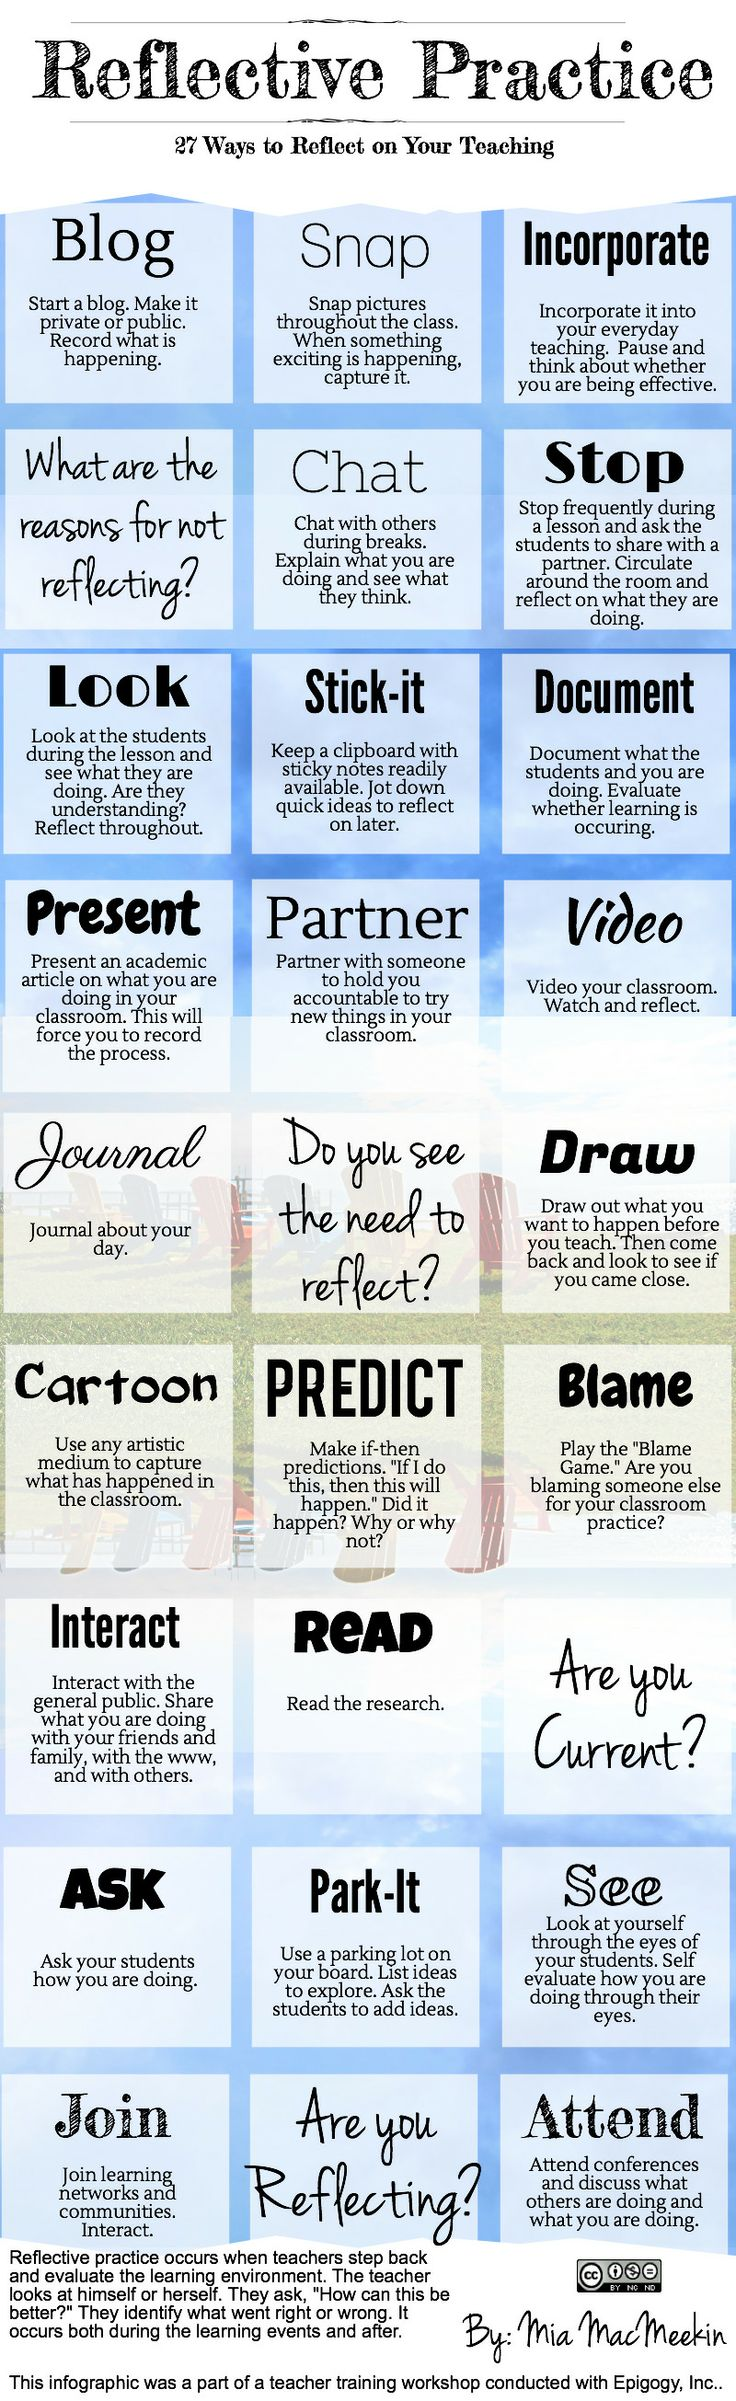 27 Ways to Reflect on Your Teaching